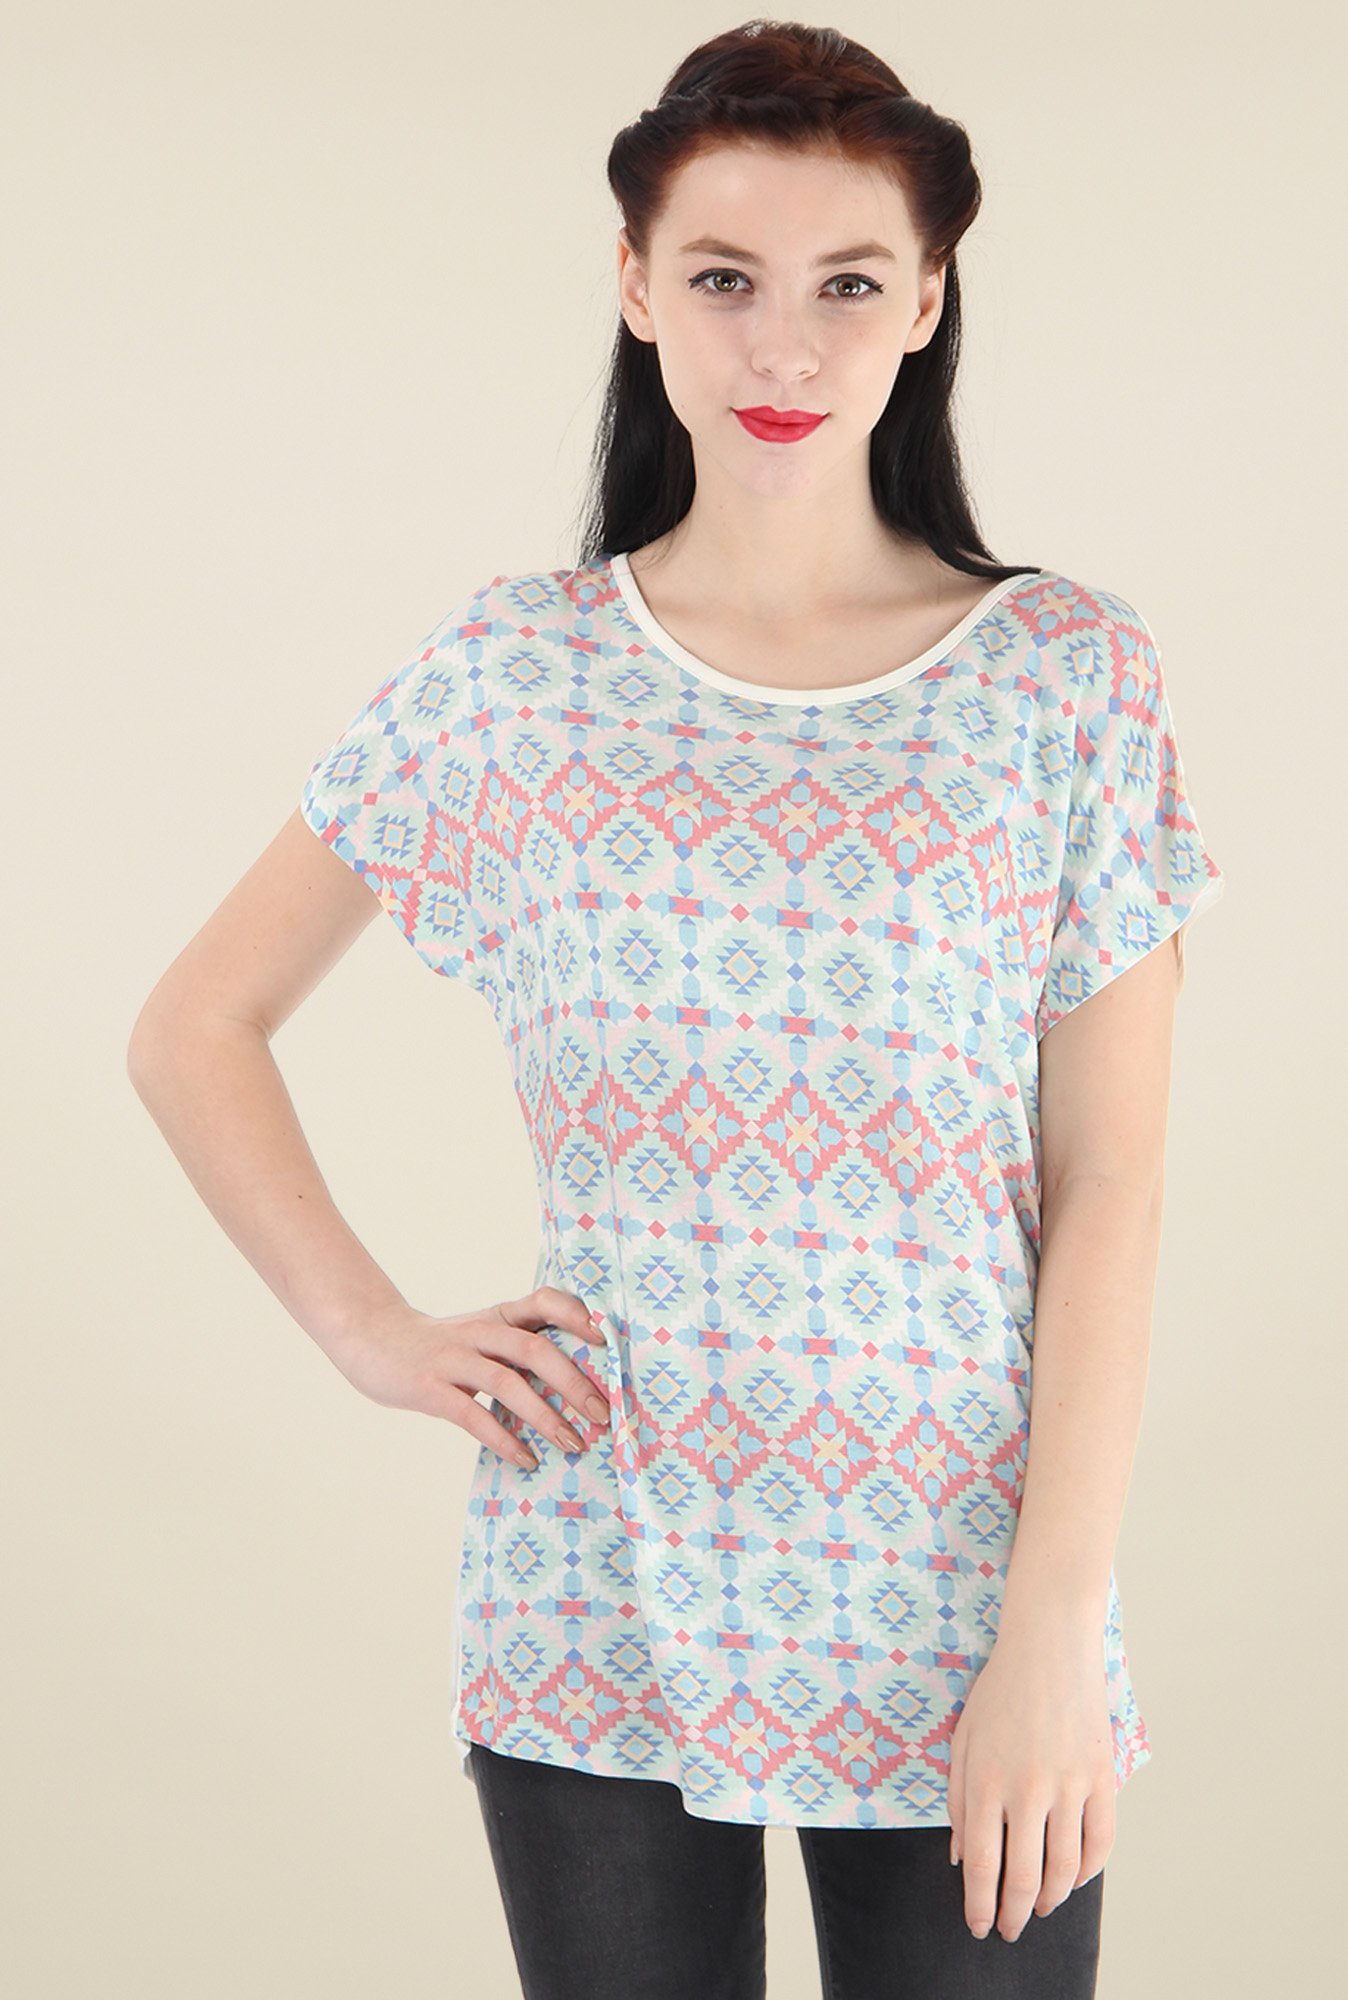 Pepe Jeans Multicolor Short Sleeves Top